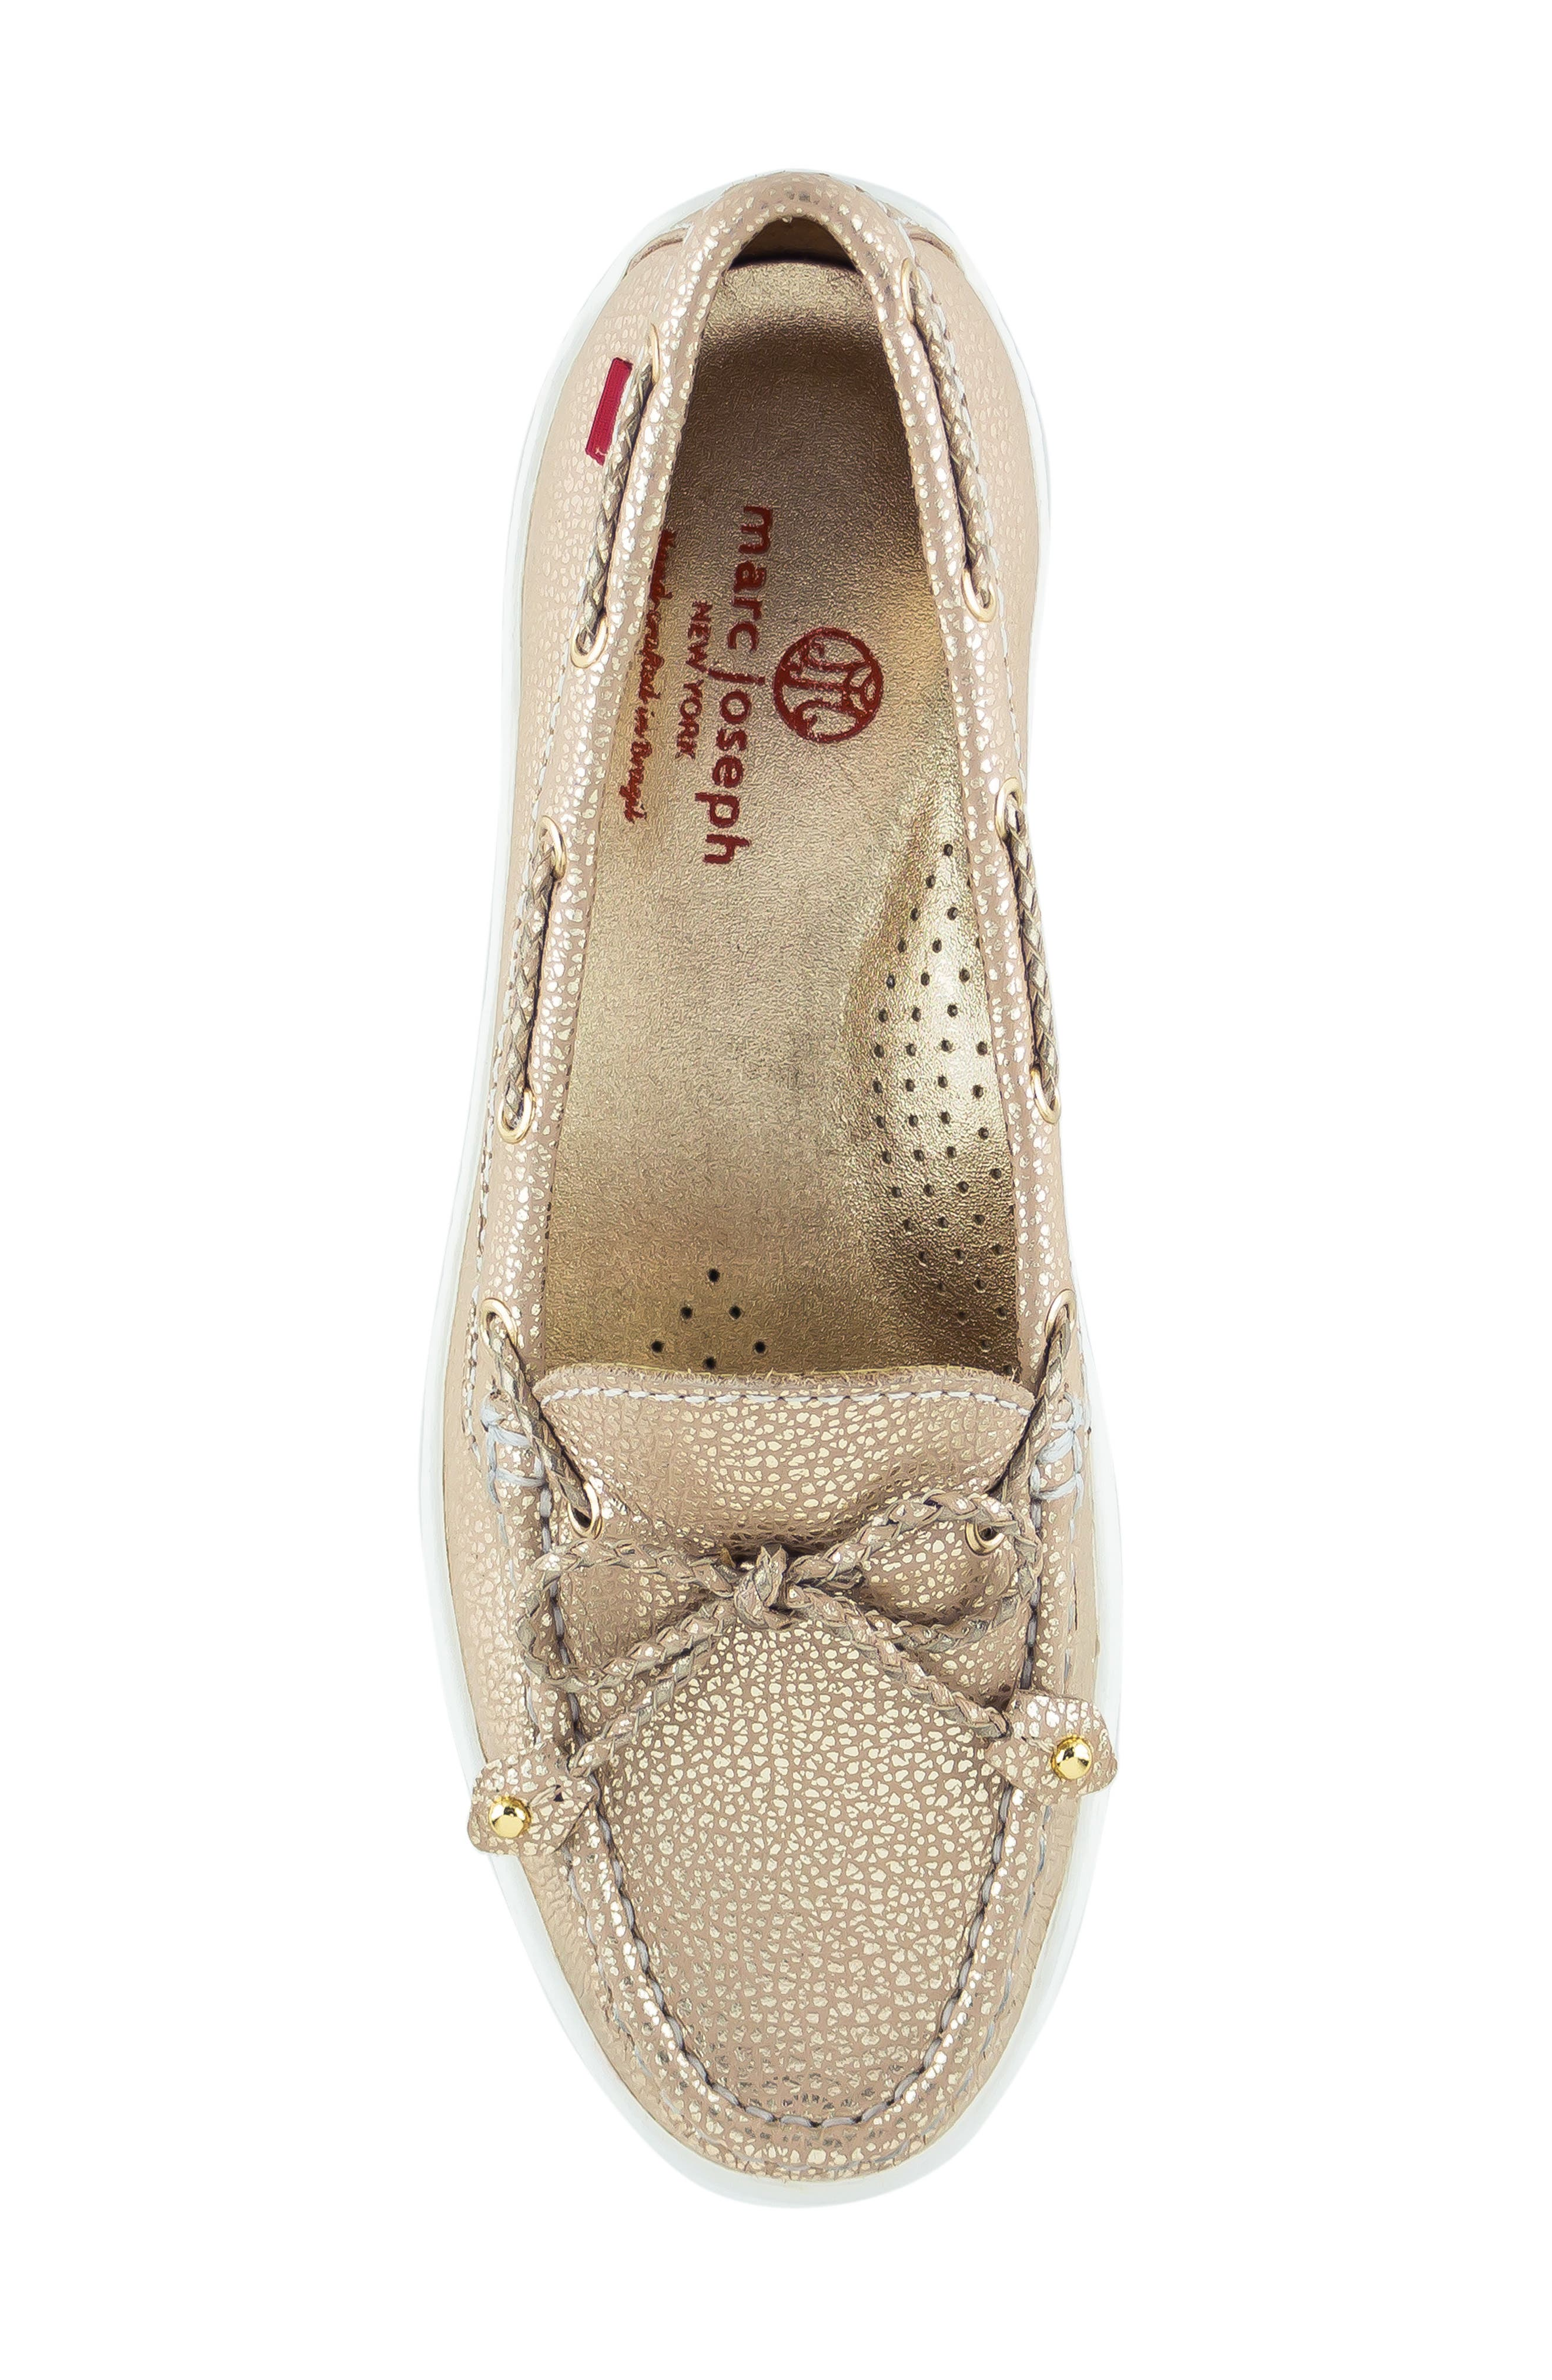 MARC JOSEPH NEW YORK, Pacific Loafer, Alternate thumbnail 5, color, GOLD LEATHER